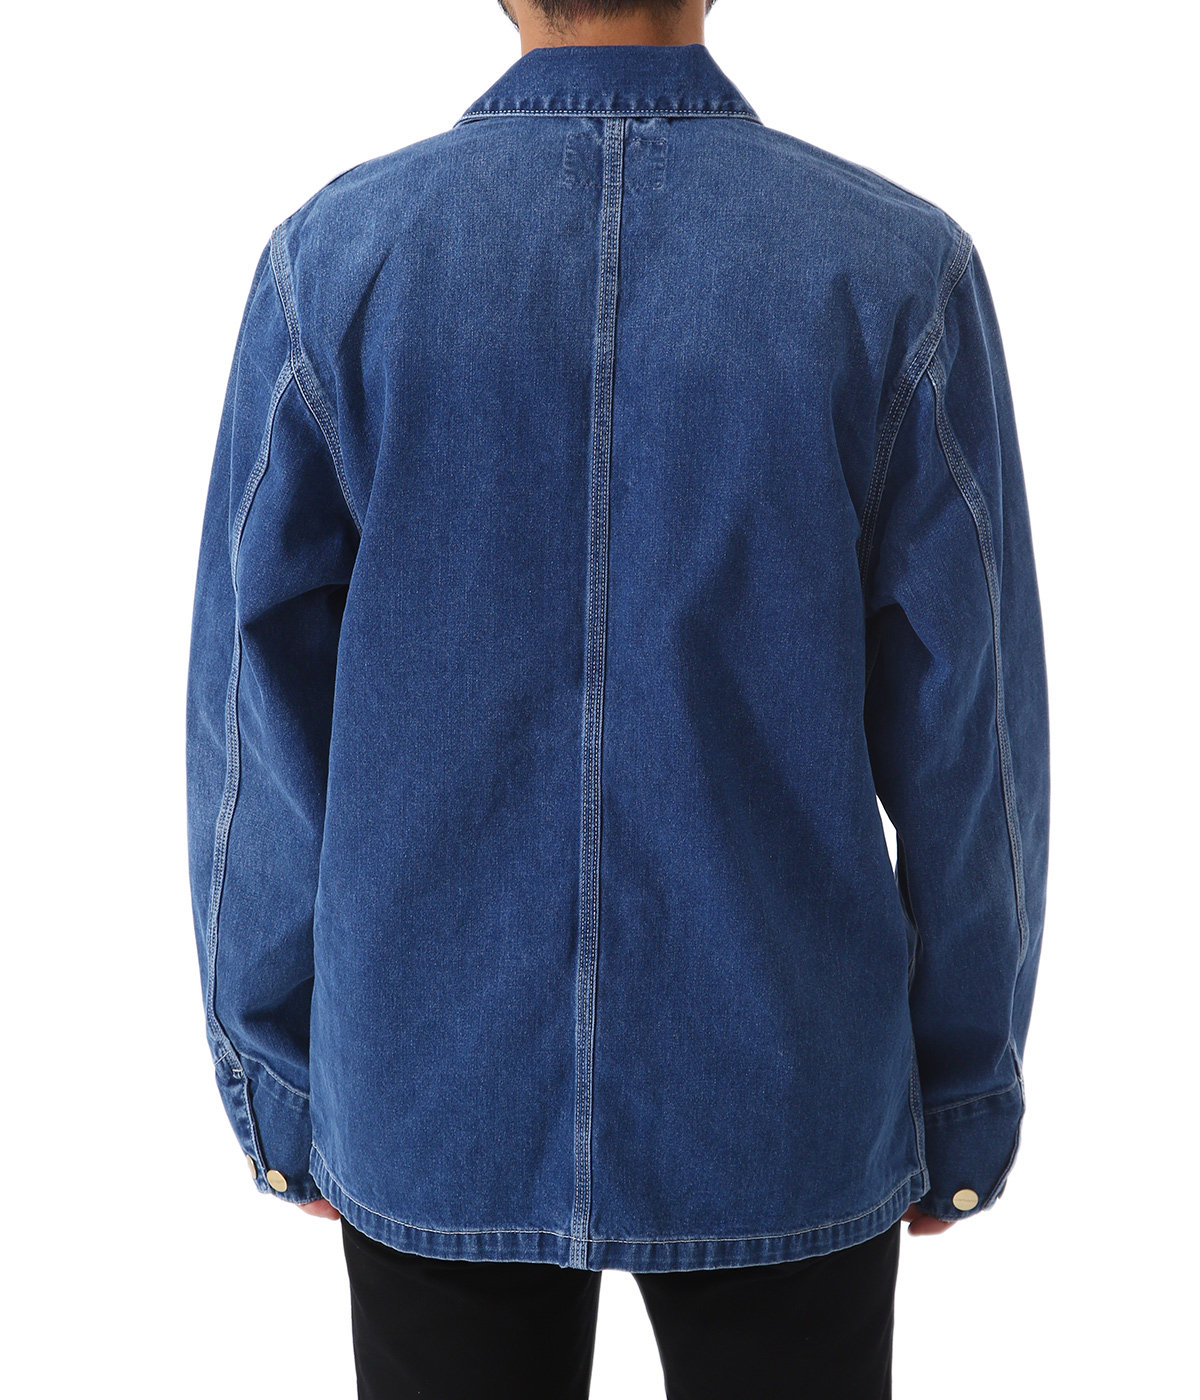 MICHIGAN CHORE COAT(Blue mid won wash)